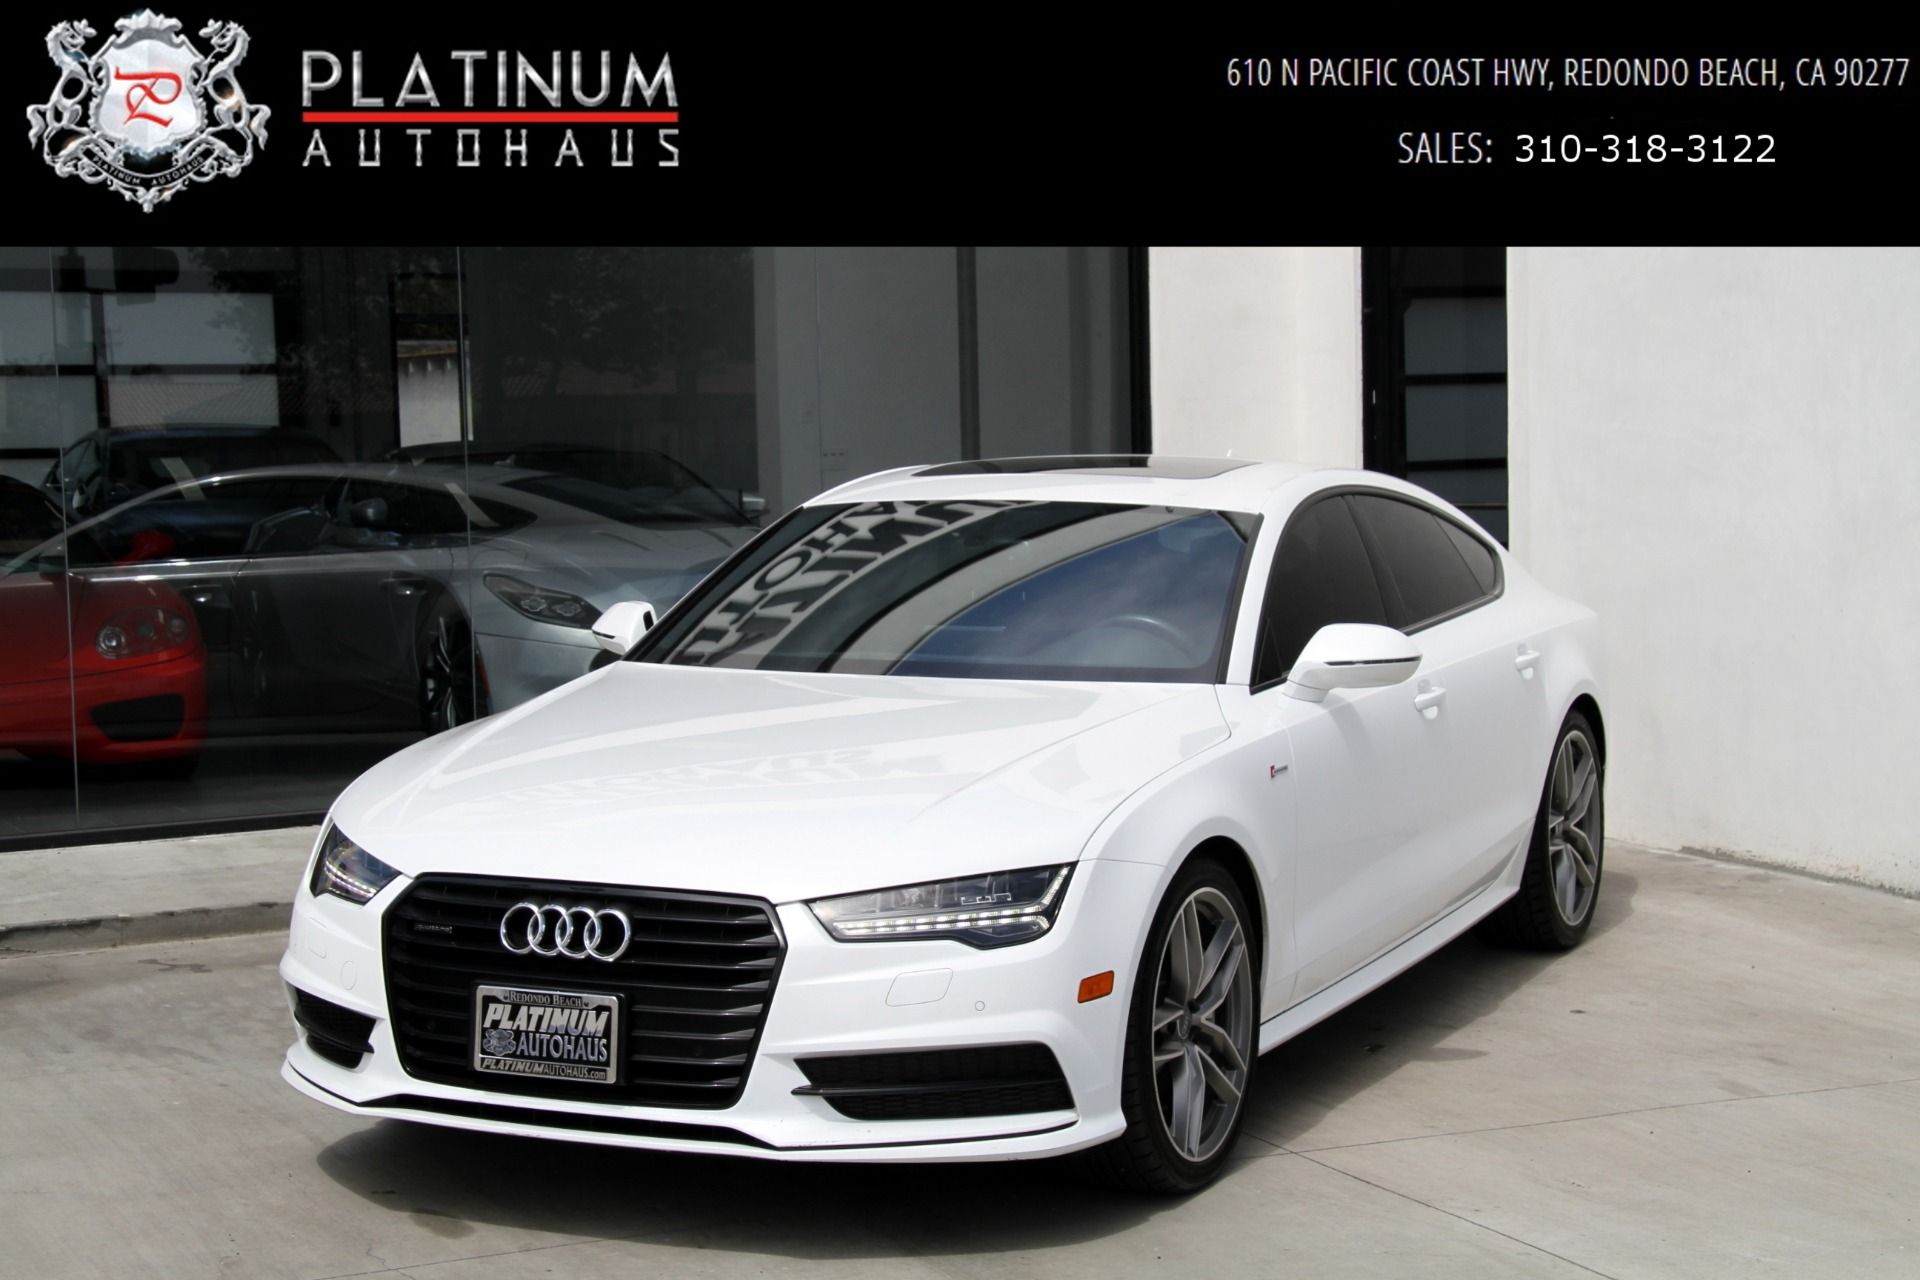 Audi Dealership Near Me >> 2016 Audi A7 3.0T quattro Premium Plus ***S LINE SPORT PKG *** Stock # 6219 for sale near ...